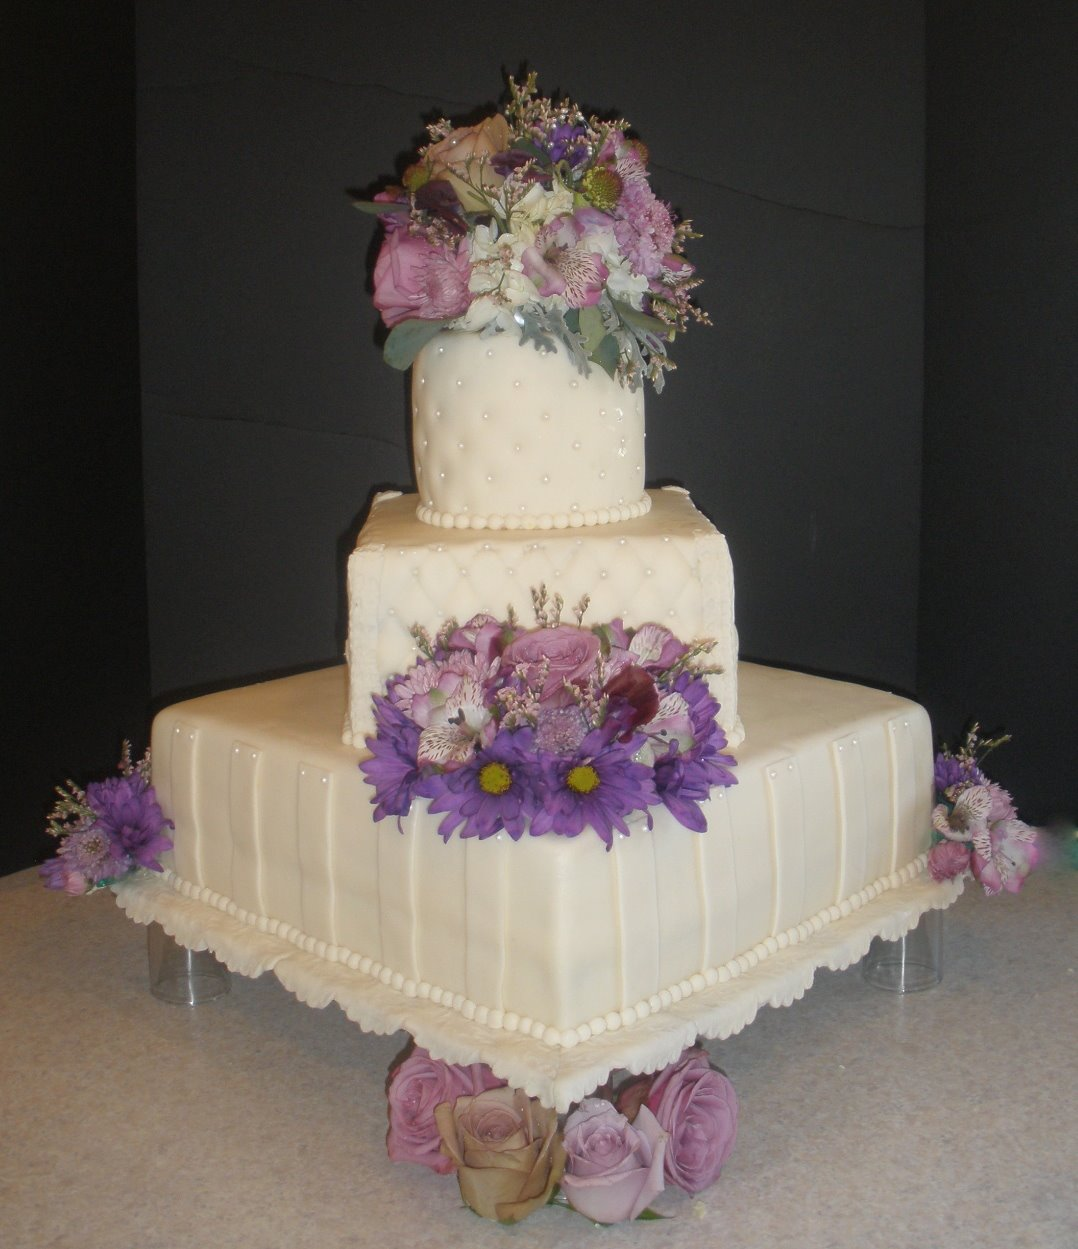 Albertson Wedding Cakes Albertsons Wedding Cakes Albertsons Bakery Wedding Cakes Albertsons